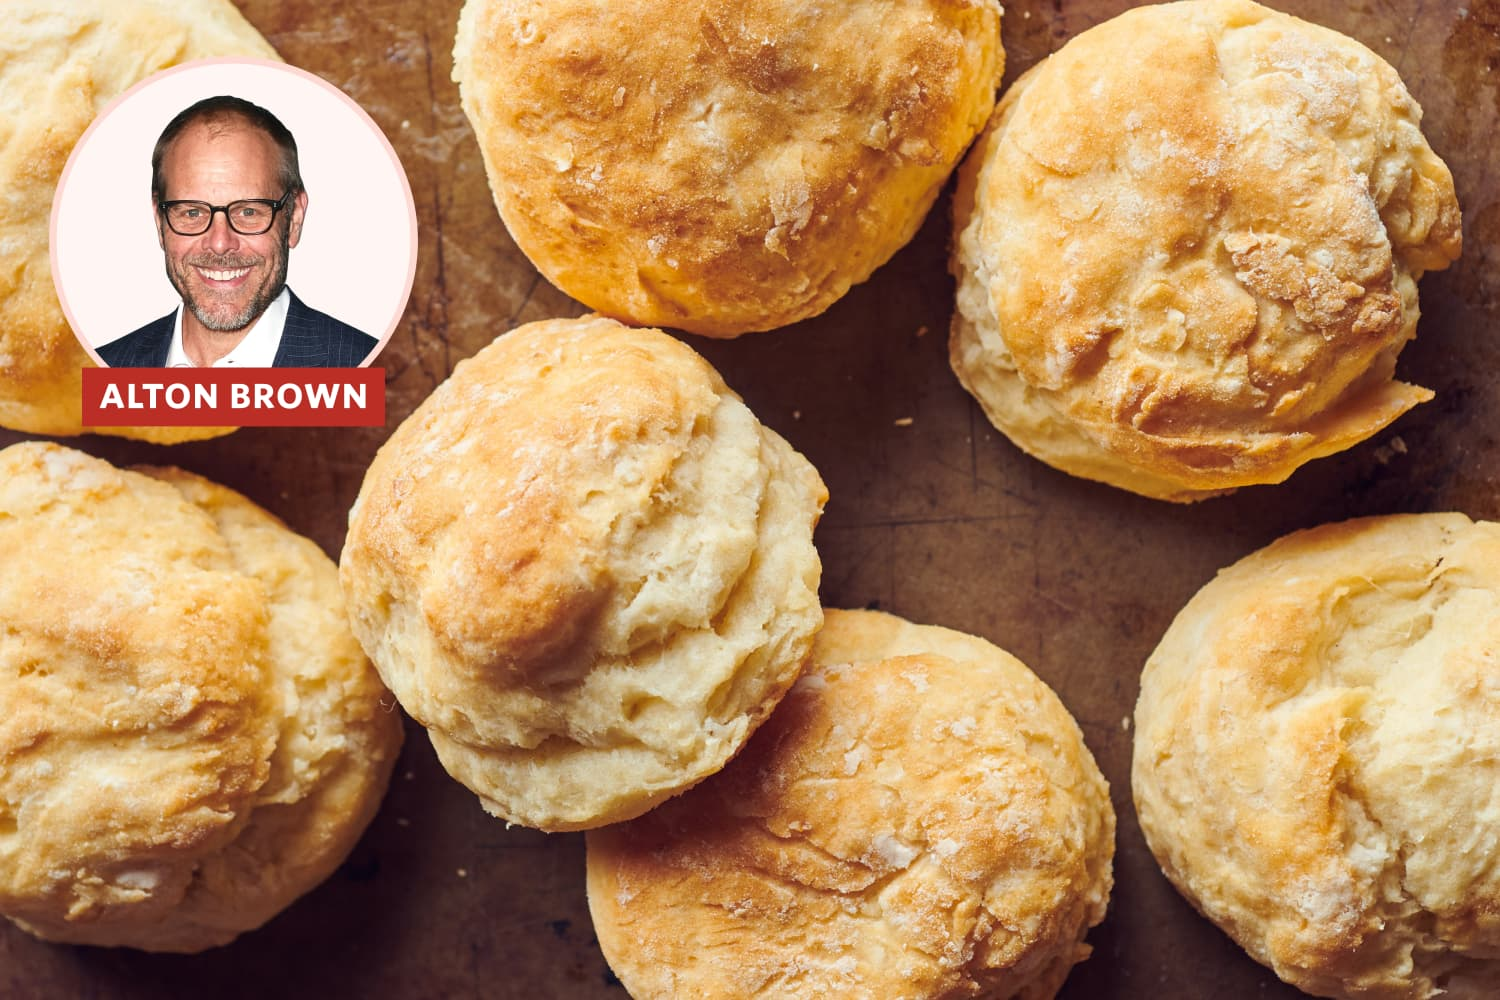 Alton Brown's Southern Biscuits Are So Good, I've Been Making Them for More than 10 Years